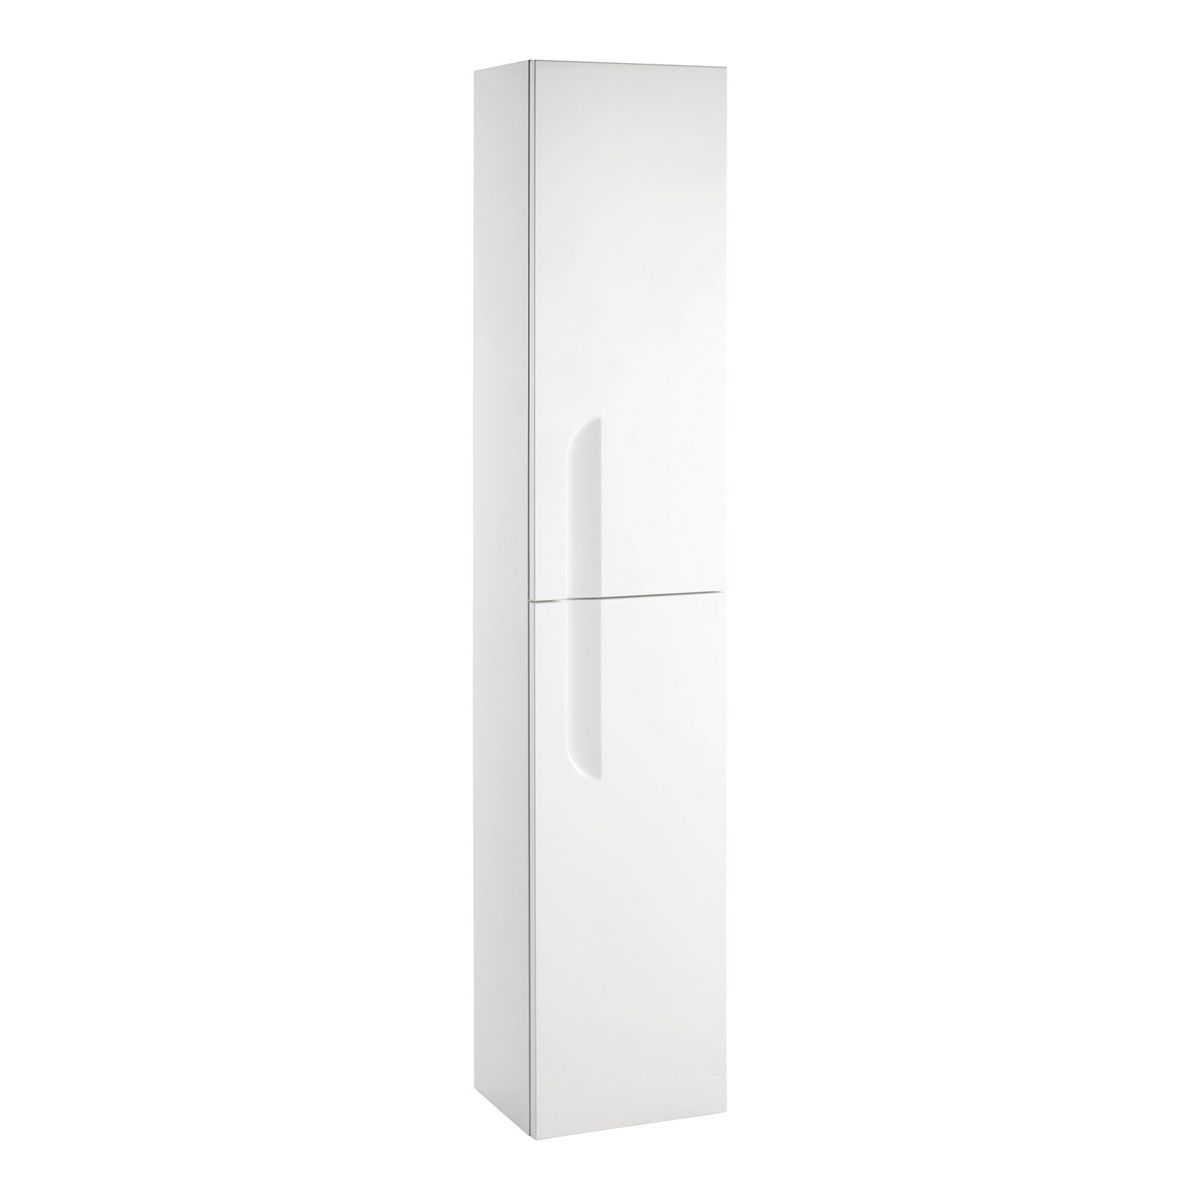 Frontline Vitale Gloss White Tall Wall Unit